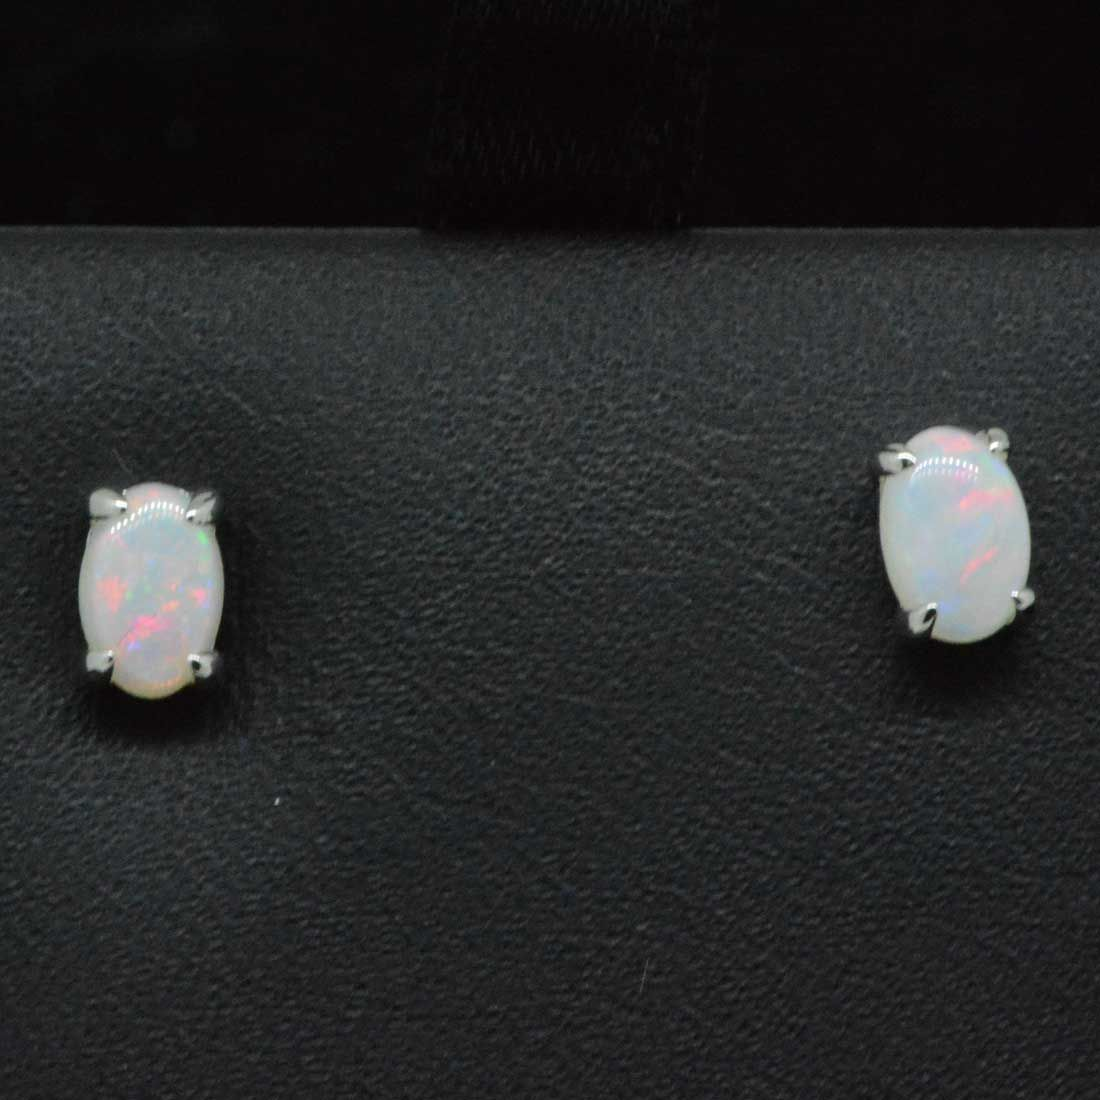 Solid opal earrings set in 9ct white gold 6x4